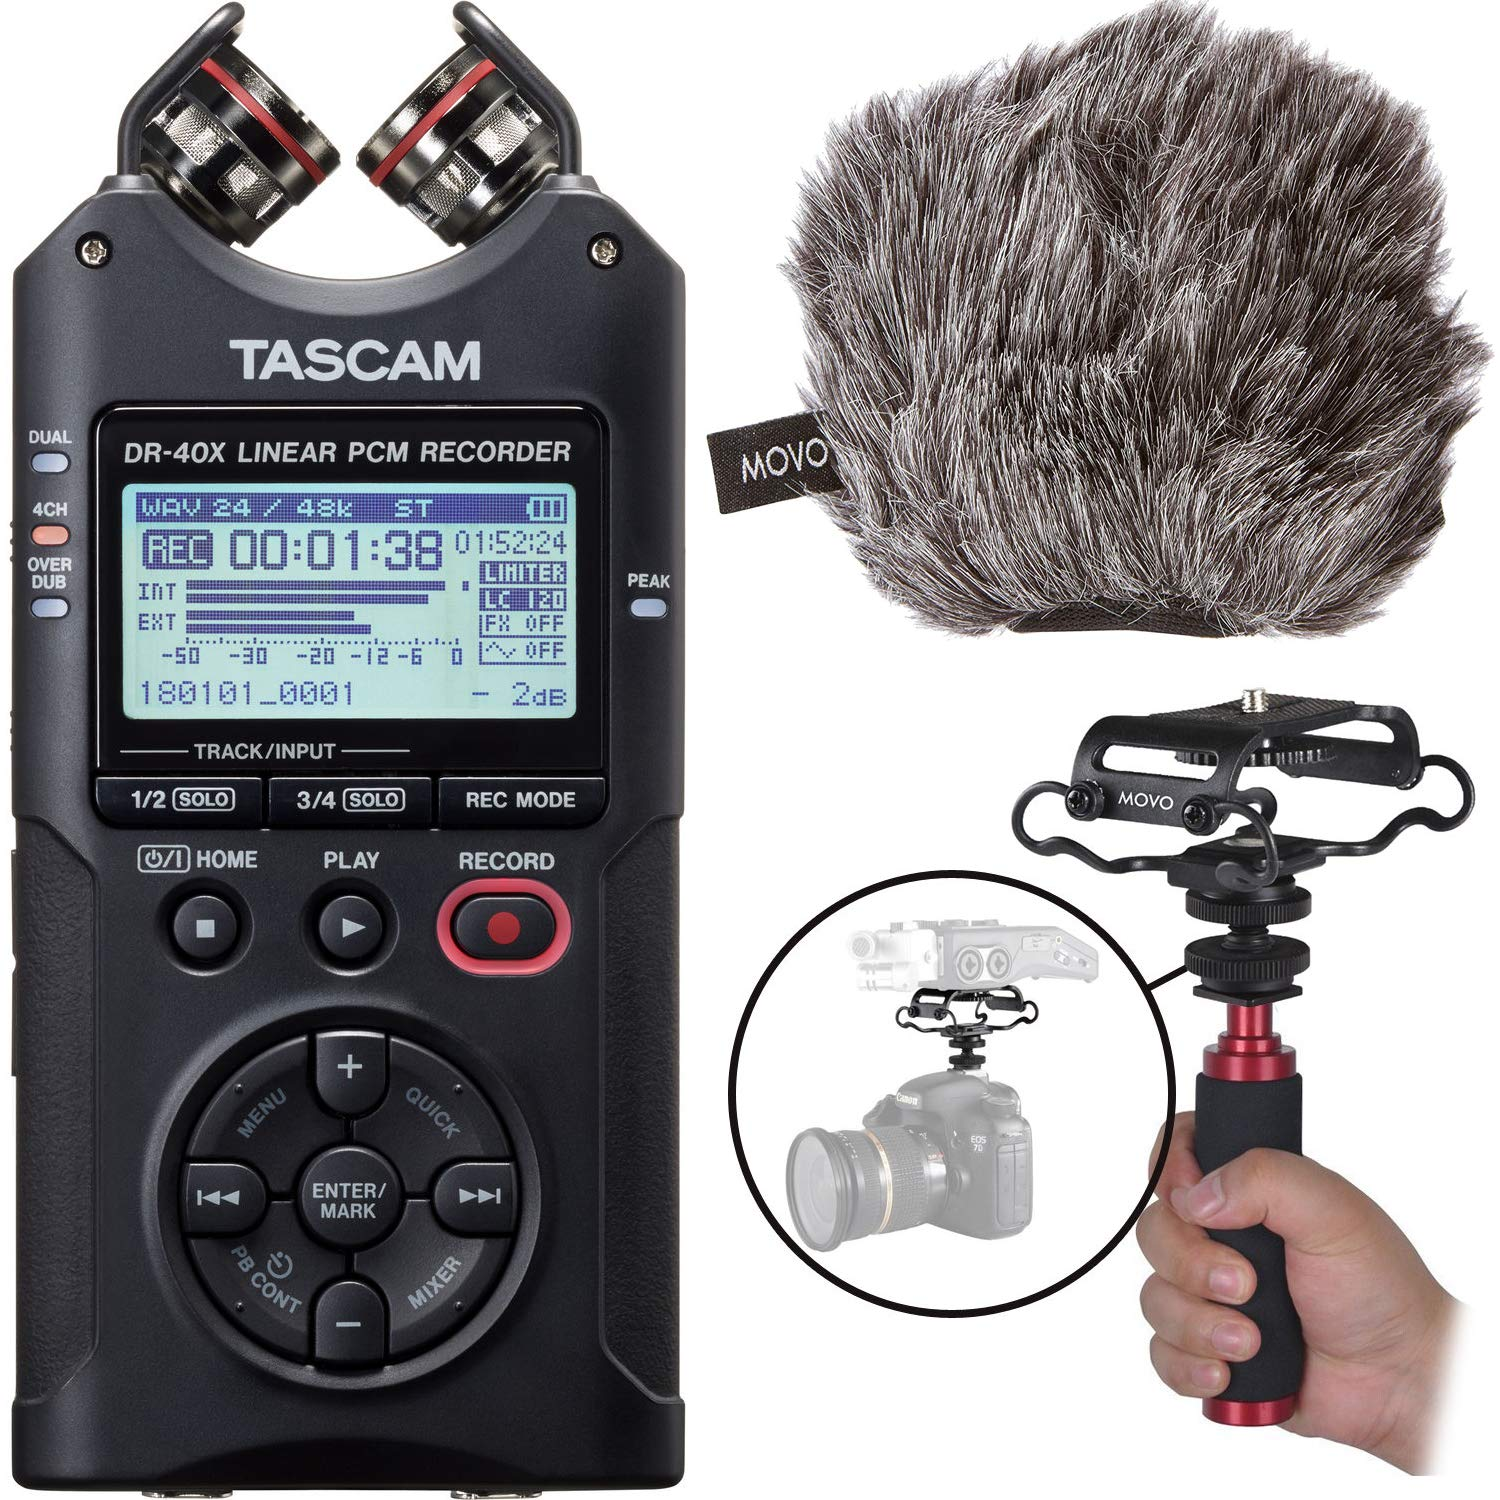 Tascam DR-40X Four-Track Digital Audio Recorder & USB Interface with Movo Audio Capture Bundle Including Camera Shockmount,''Deadcat'' Windscreen, and Aluminum Hand Grip